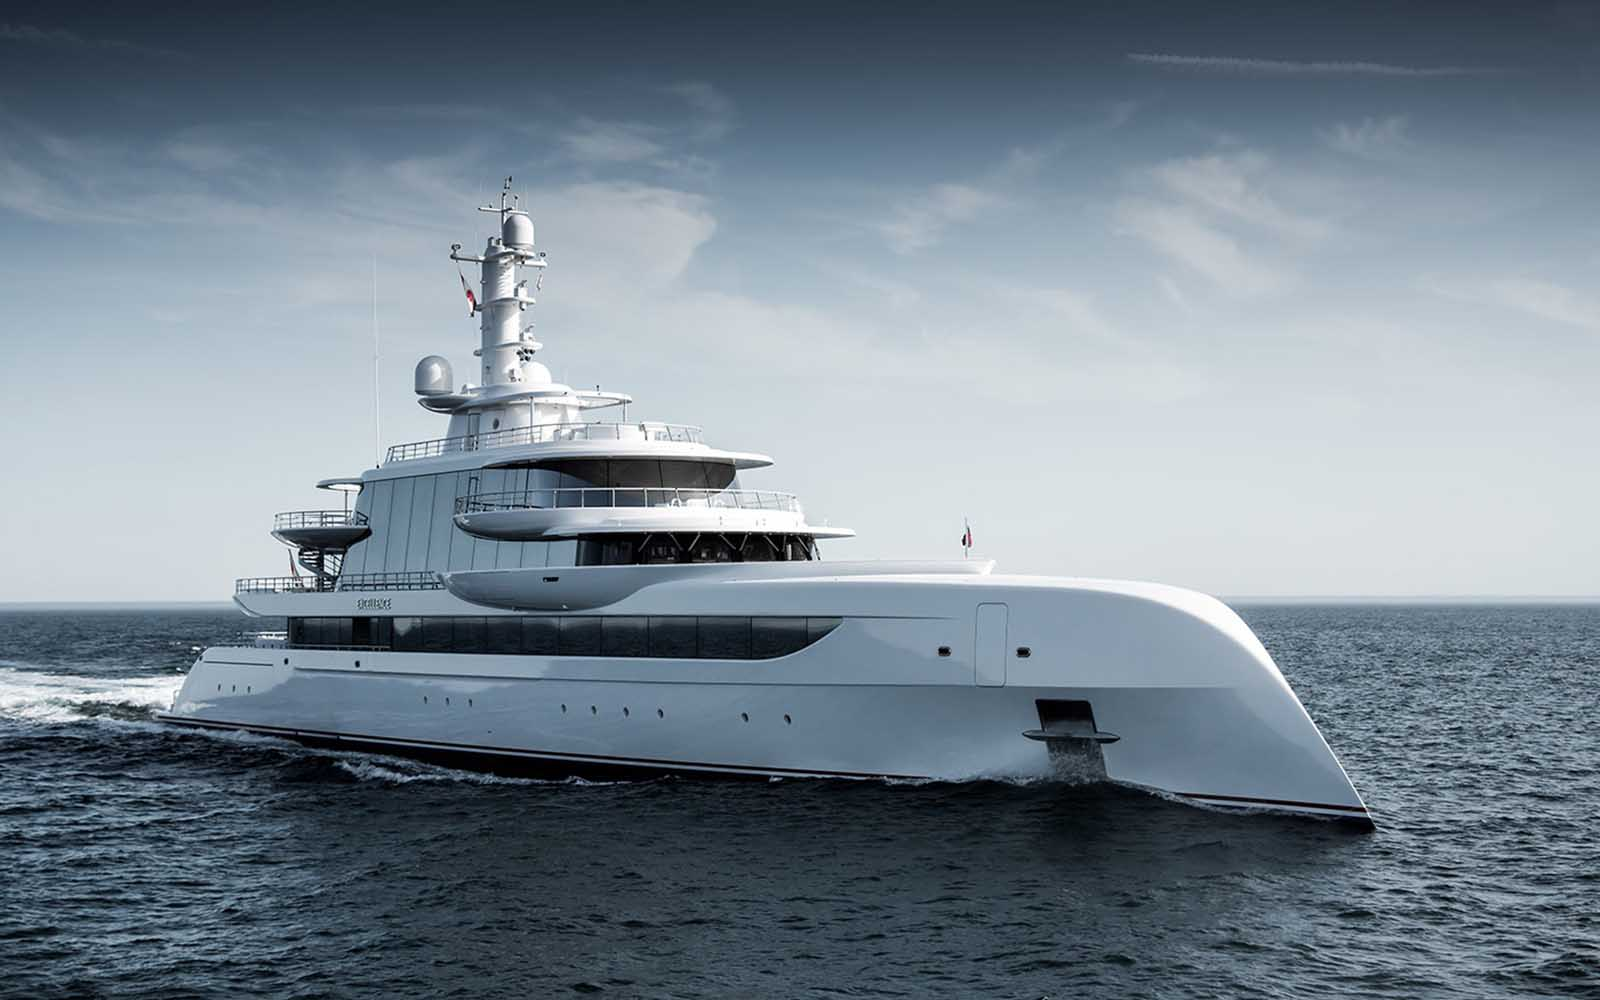 superiate excellence - boat shopping